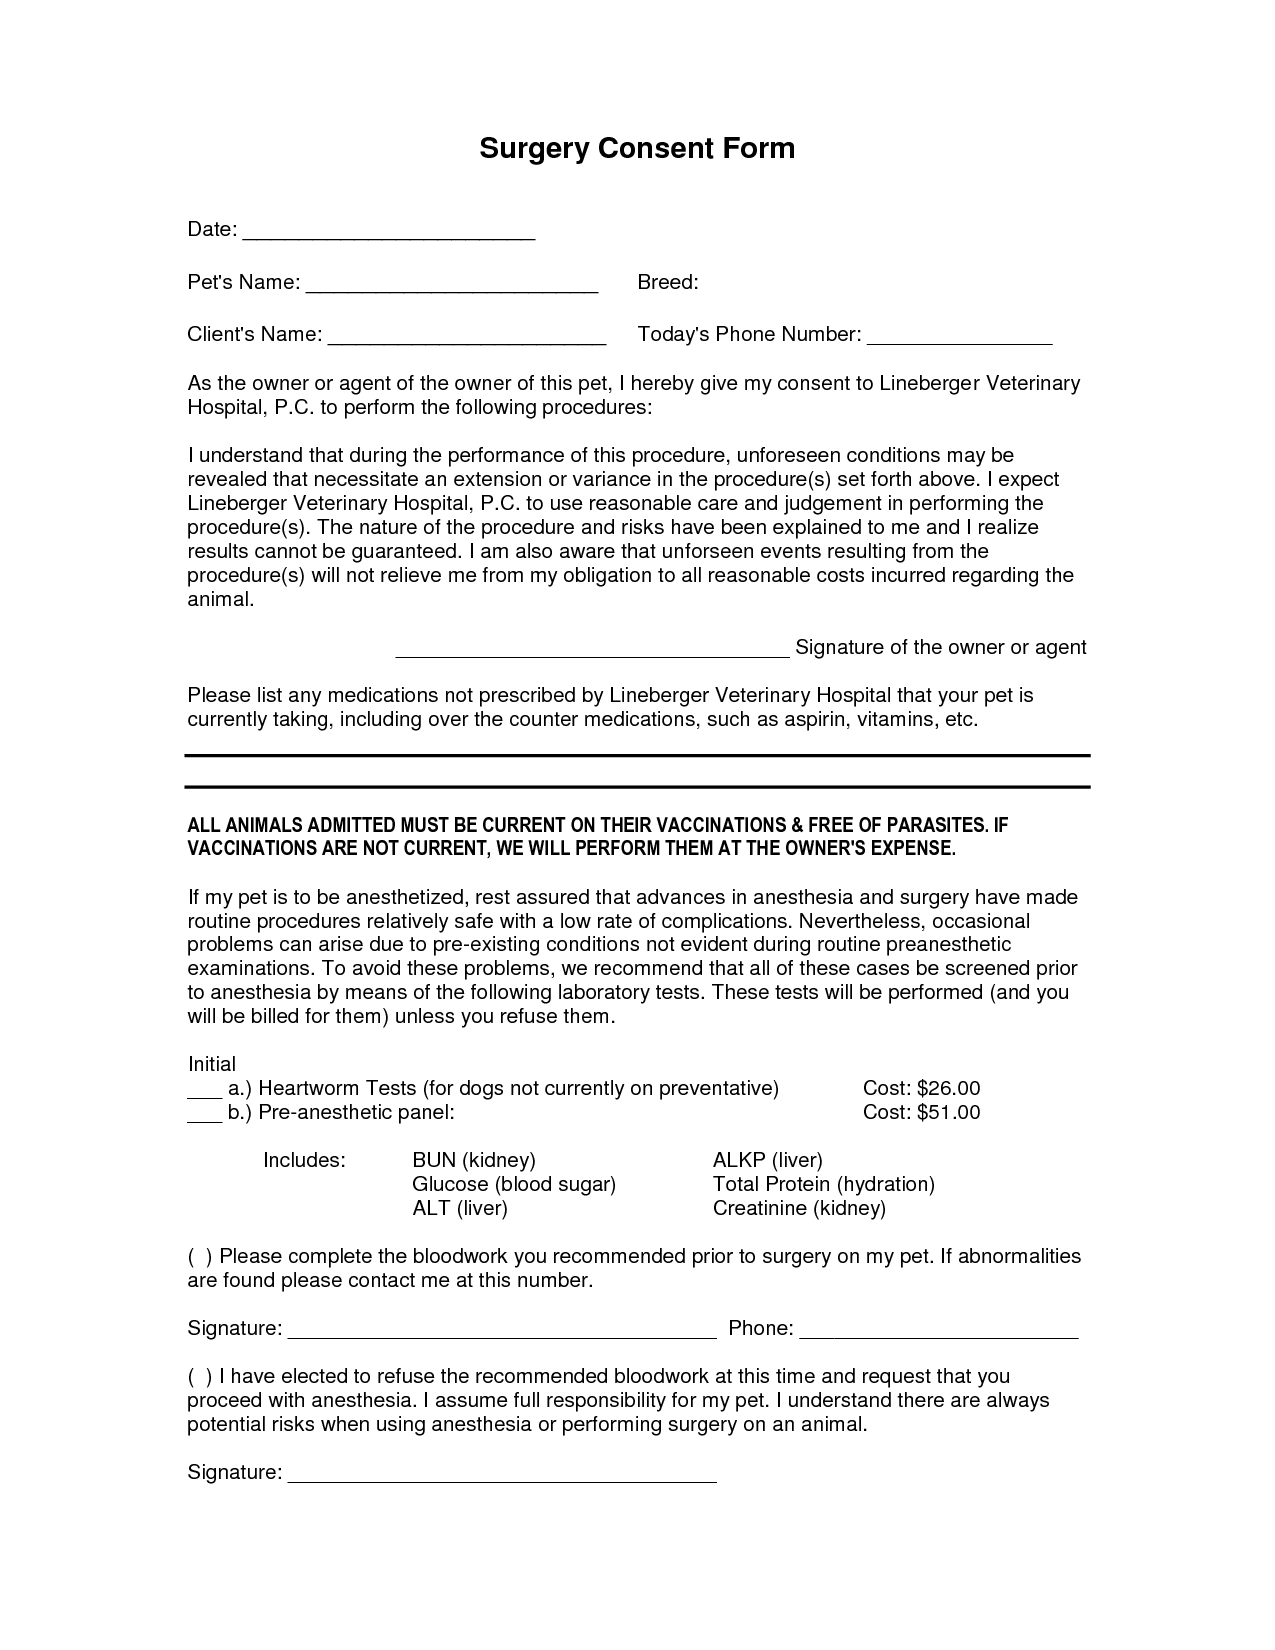 surgery consent forms Surgery Consent Forms Templates | Consent form | Pinterest | Surgery ...